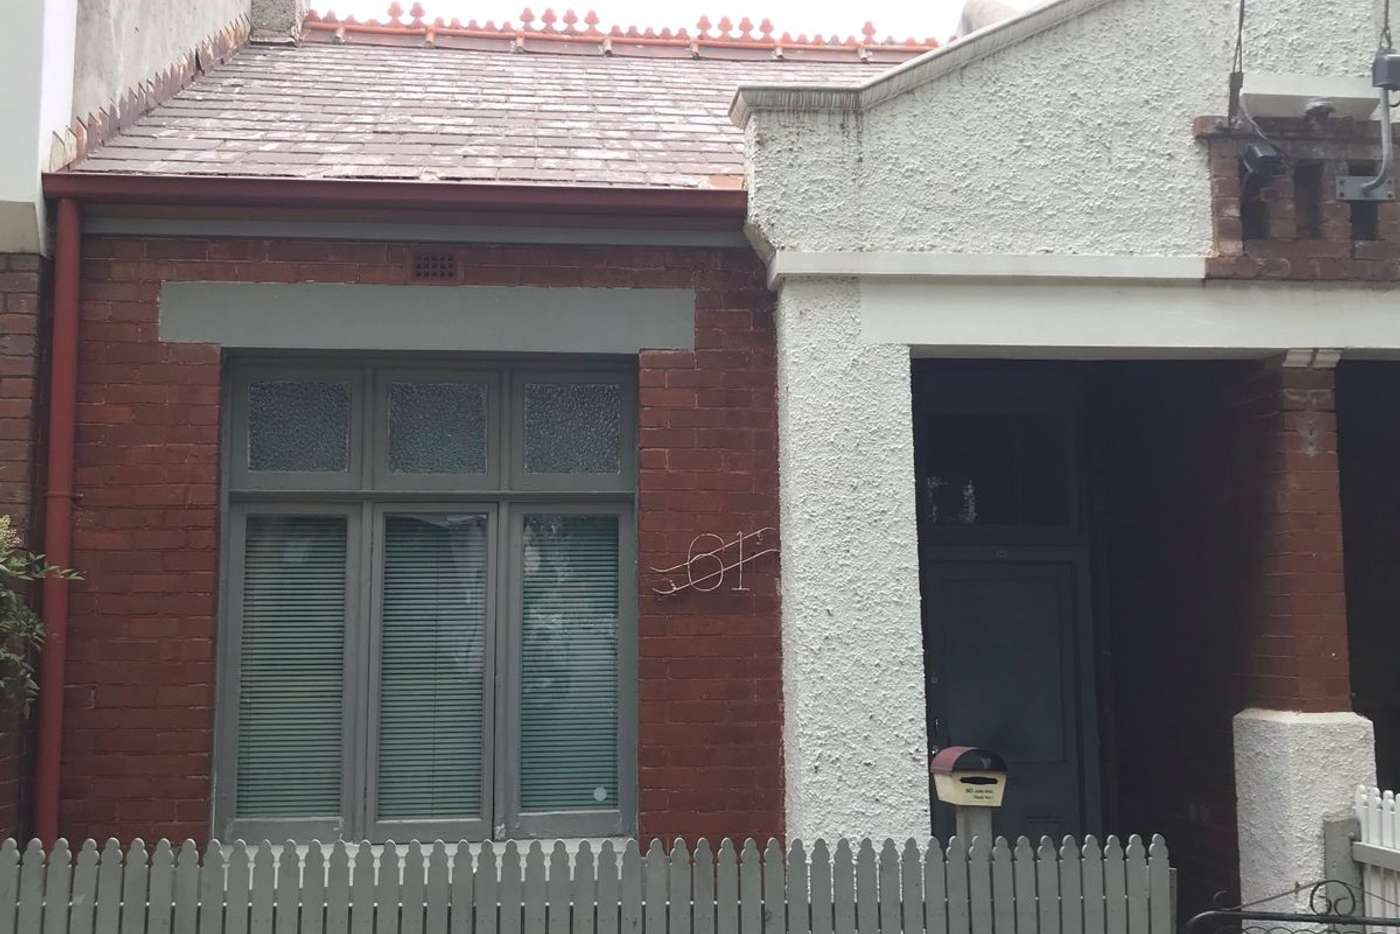 Main view of Homely house listing, 61 Canning Street, North Melbourne VIC 3051